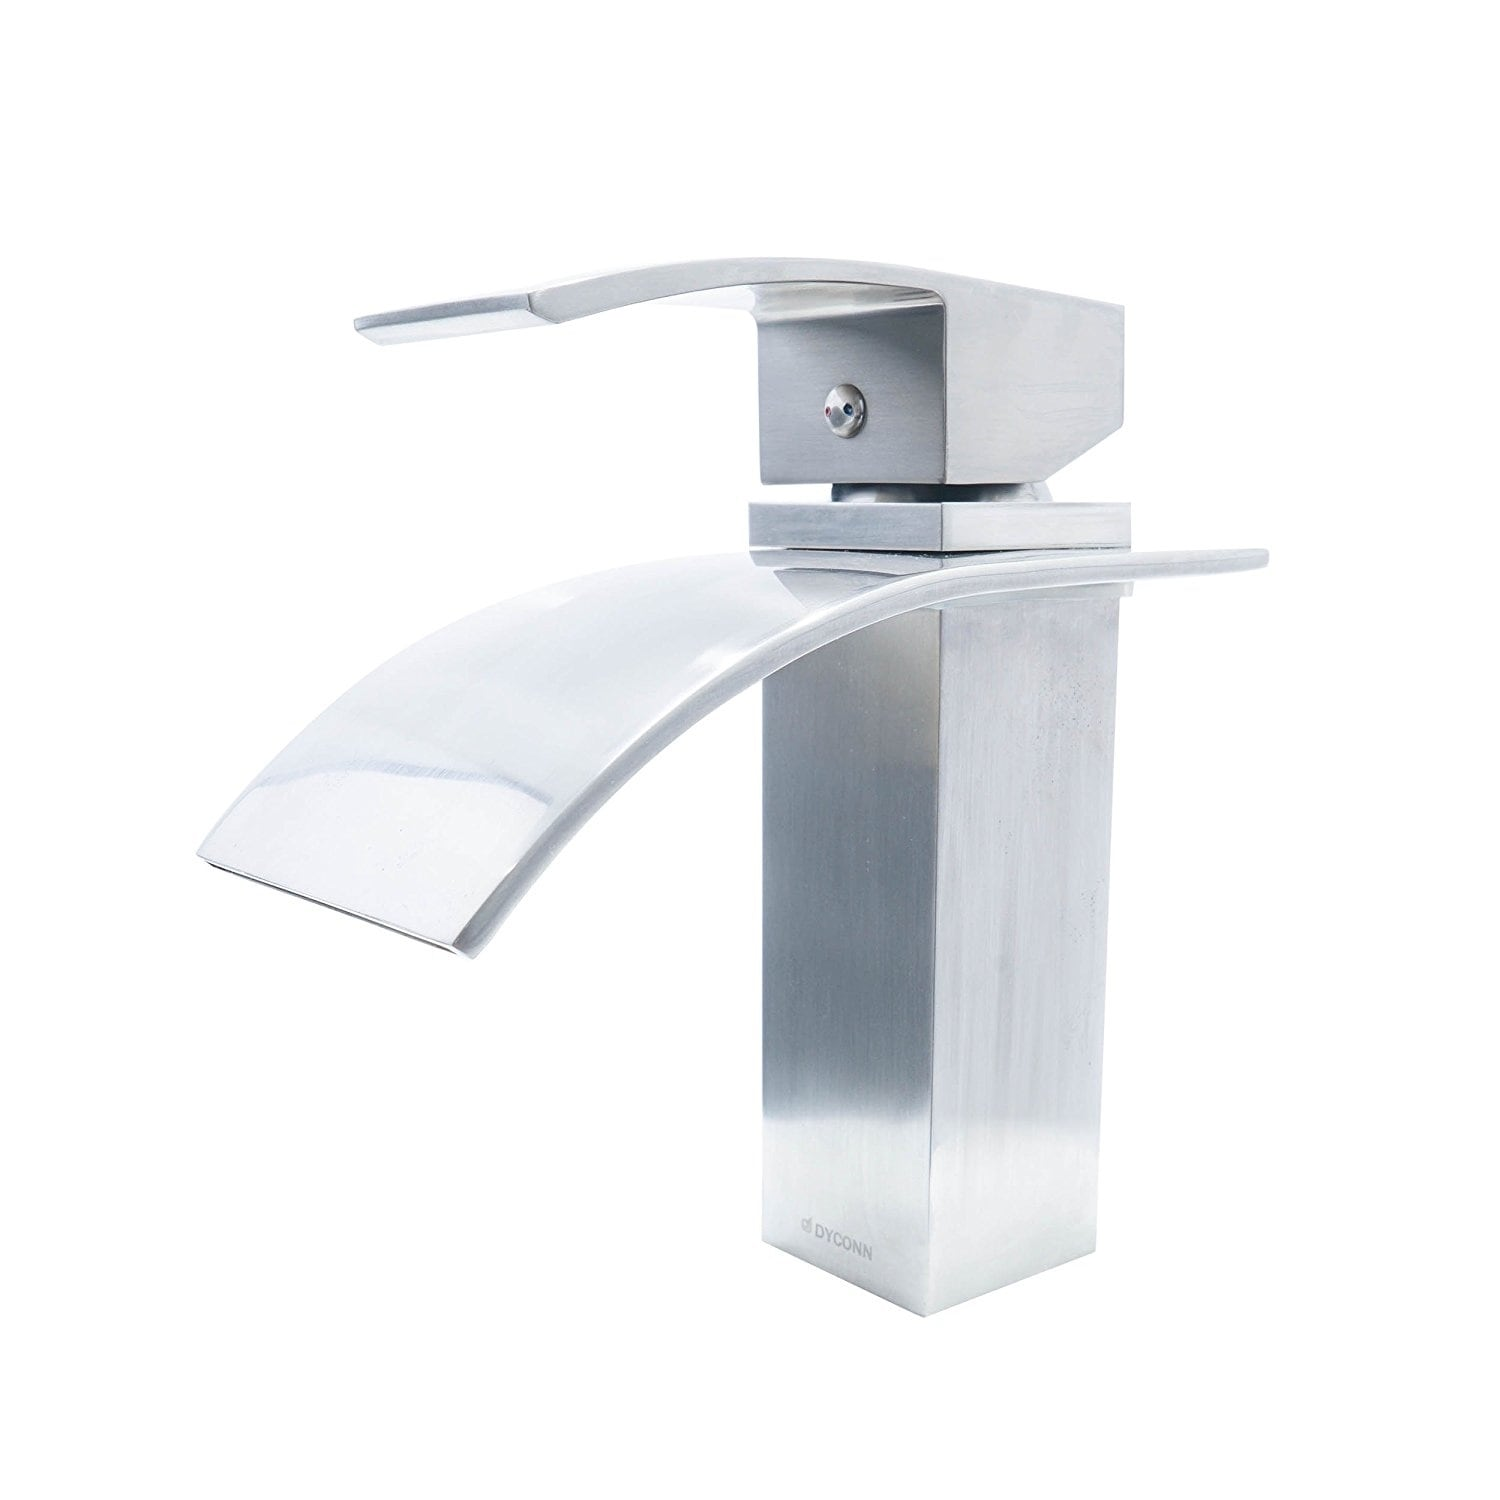 Shop Dyconn Faucet Brushed Nickel Modern Bathroom Faucet - Free ...